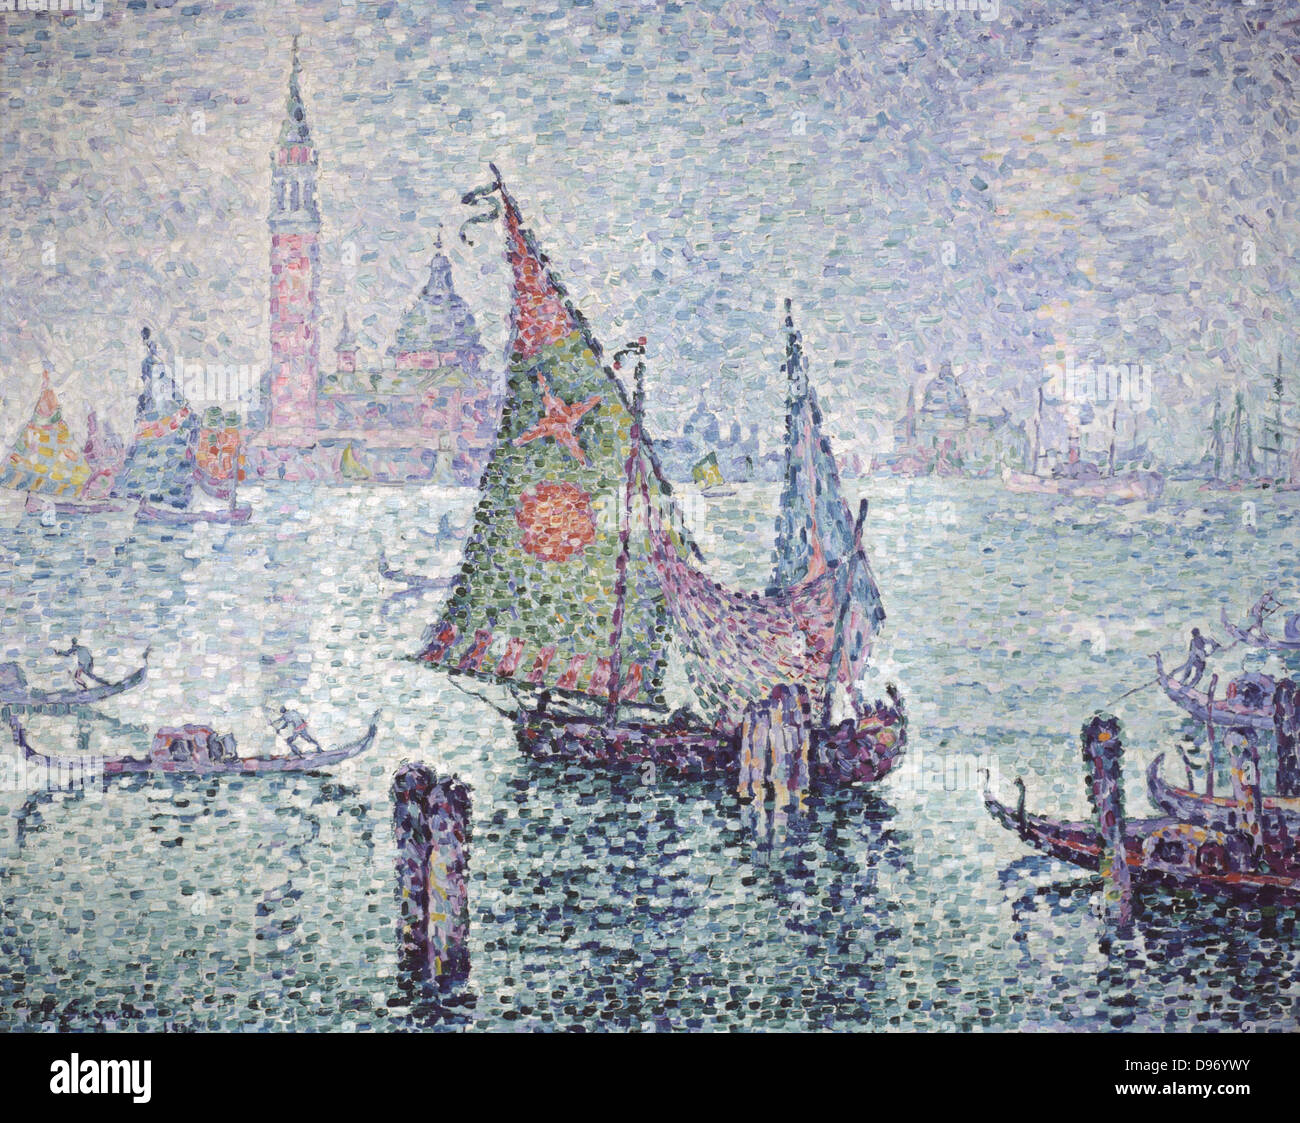 Venice; the Green Sail' 1804. Paul Signac (1863-1935) French painter. Oil on canvas. Stock Photo